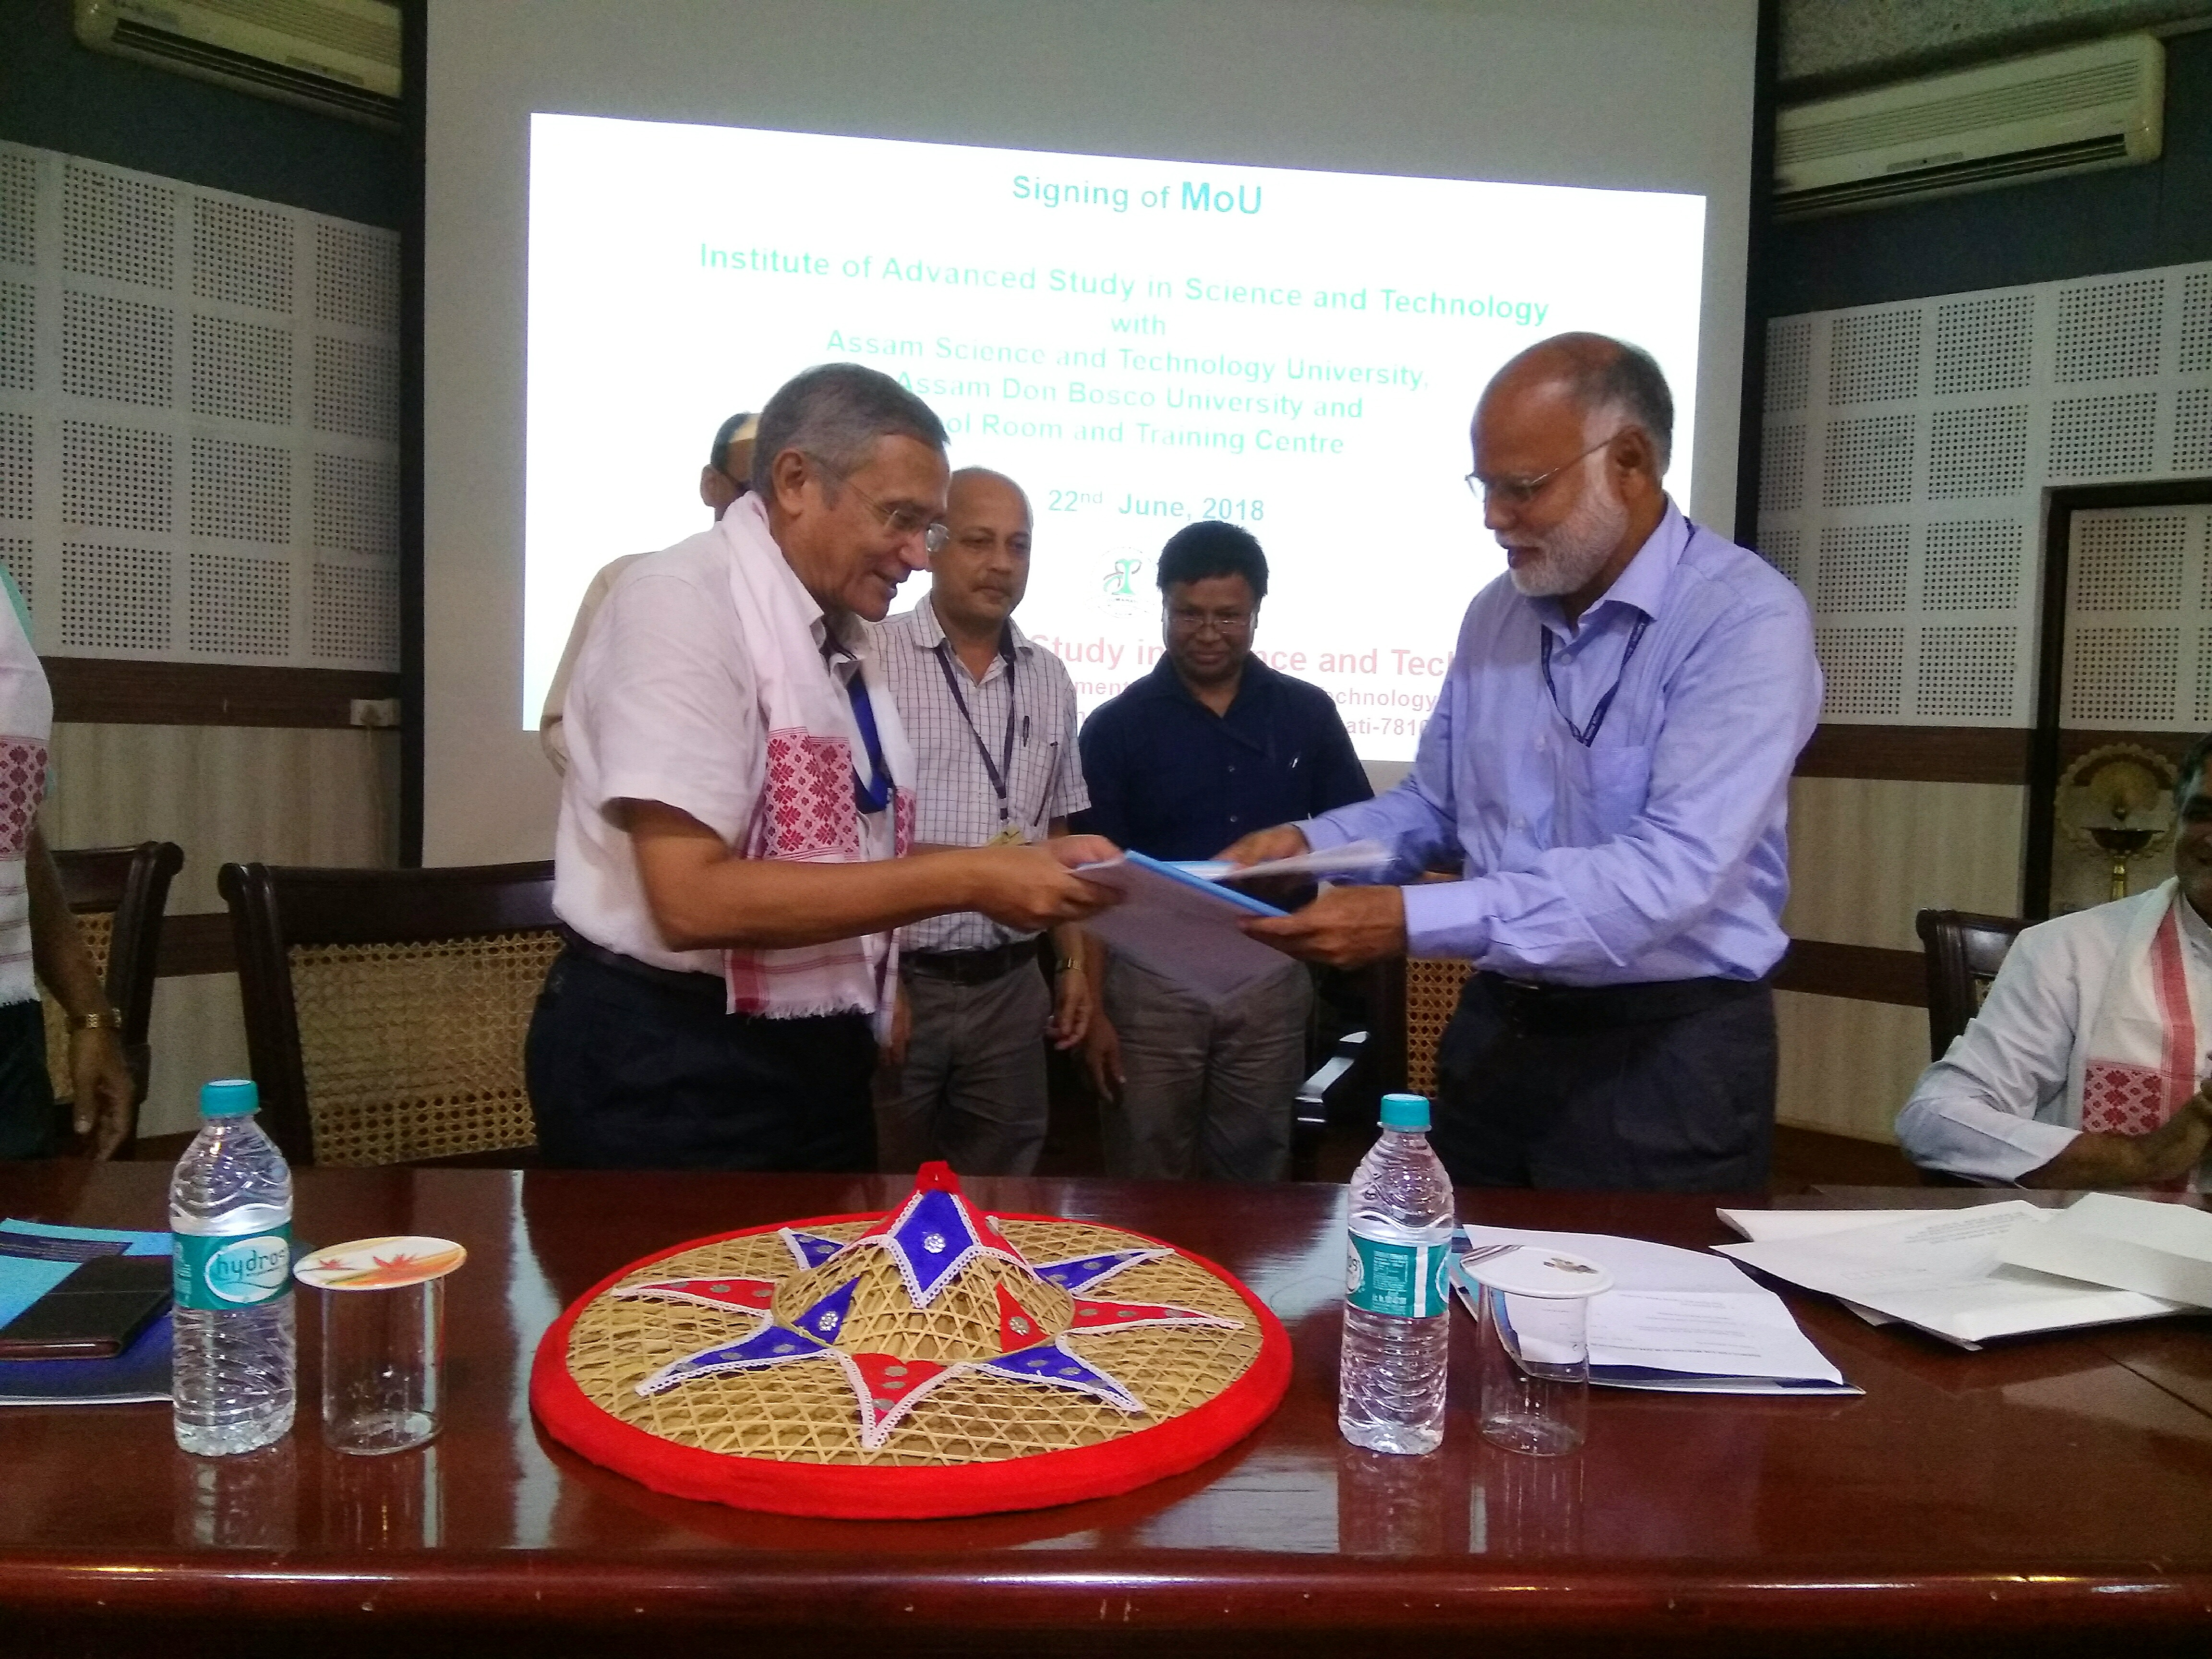 ASTU Signs MoU with IASST, Guwahati on June 22, 2018